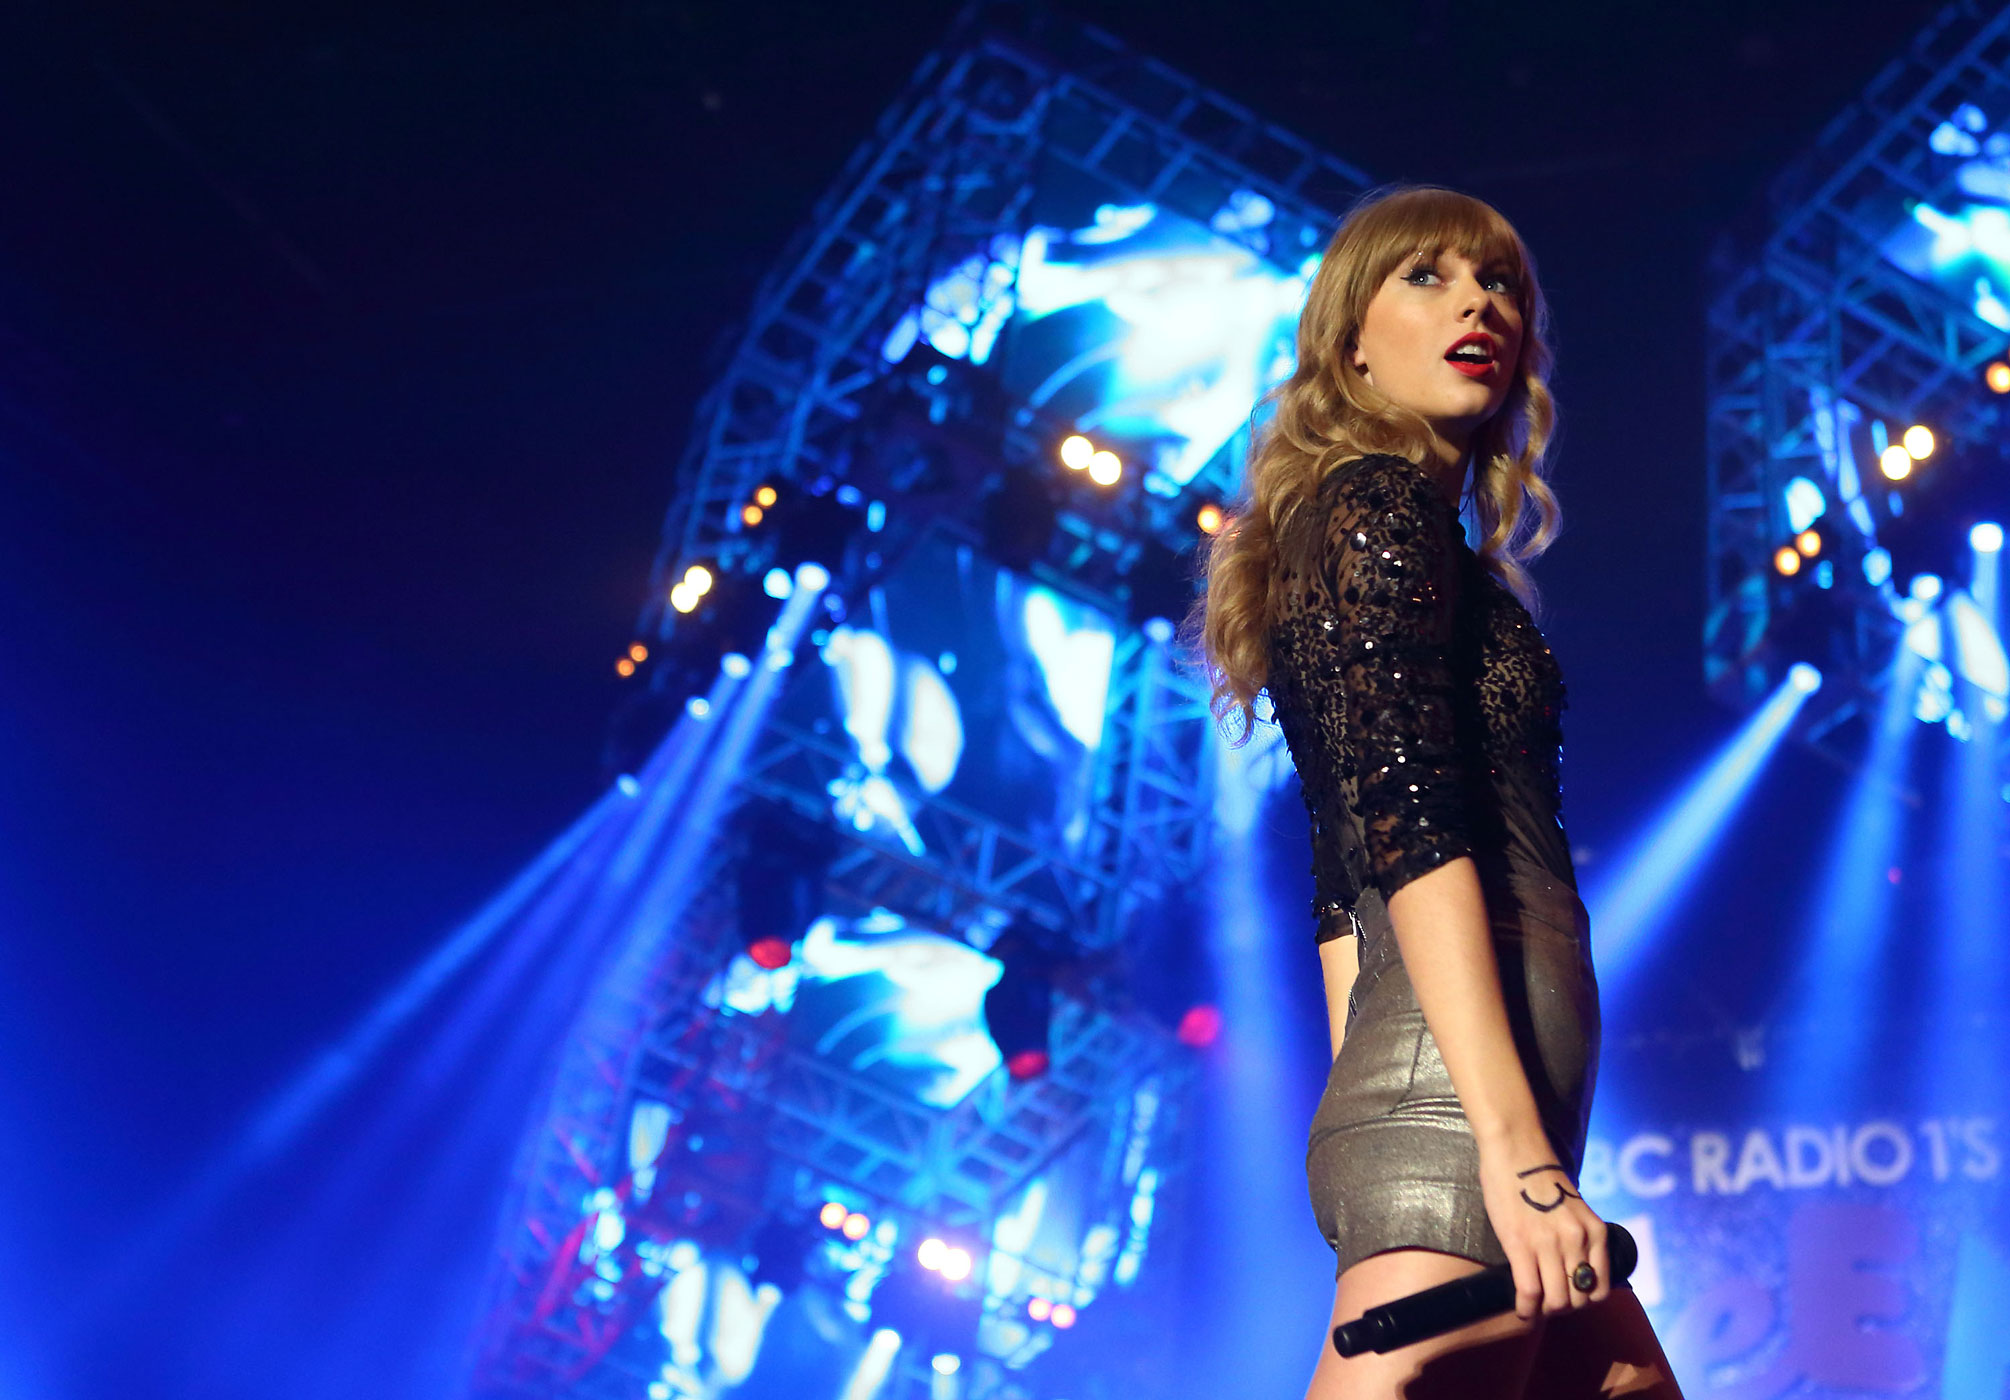 Taylor Swift performs at the Radio One Teen Awards at Wembley Arena in London, England in 2012.